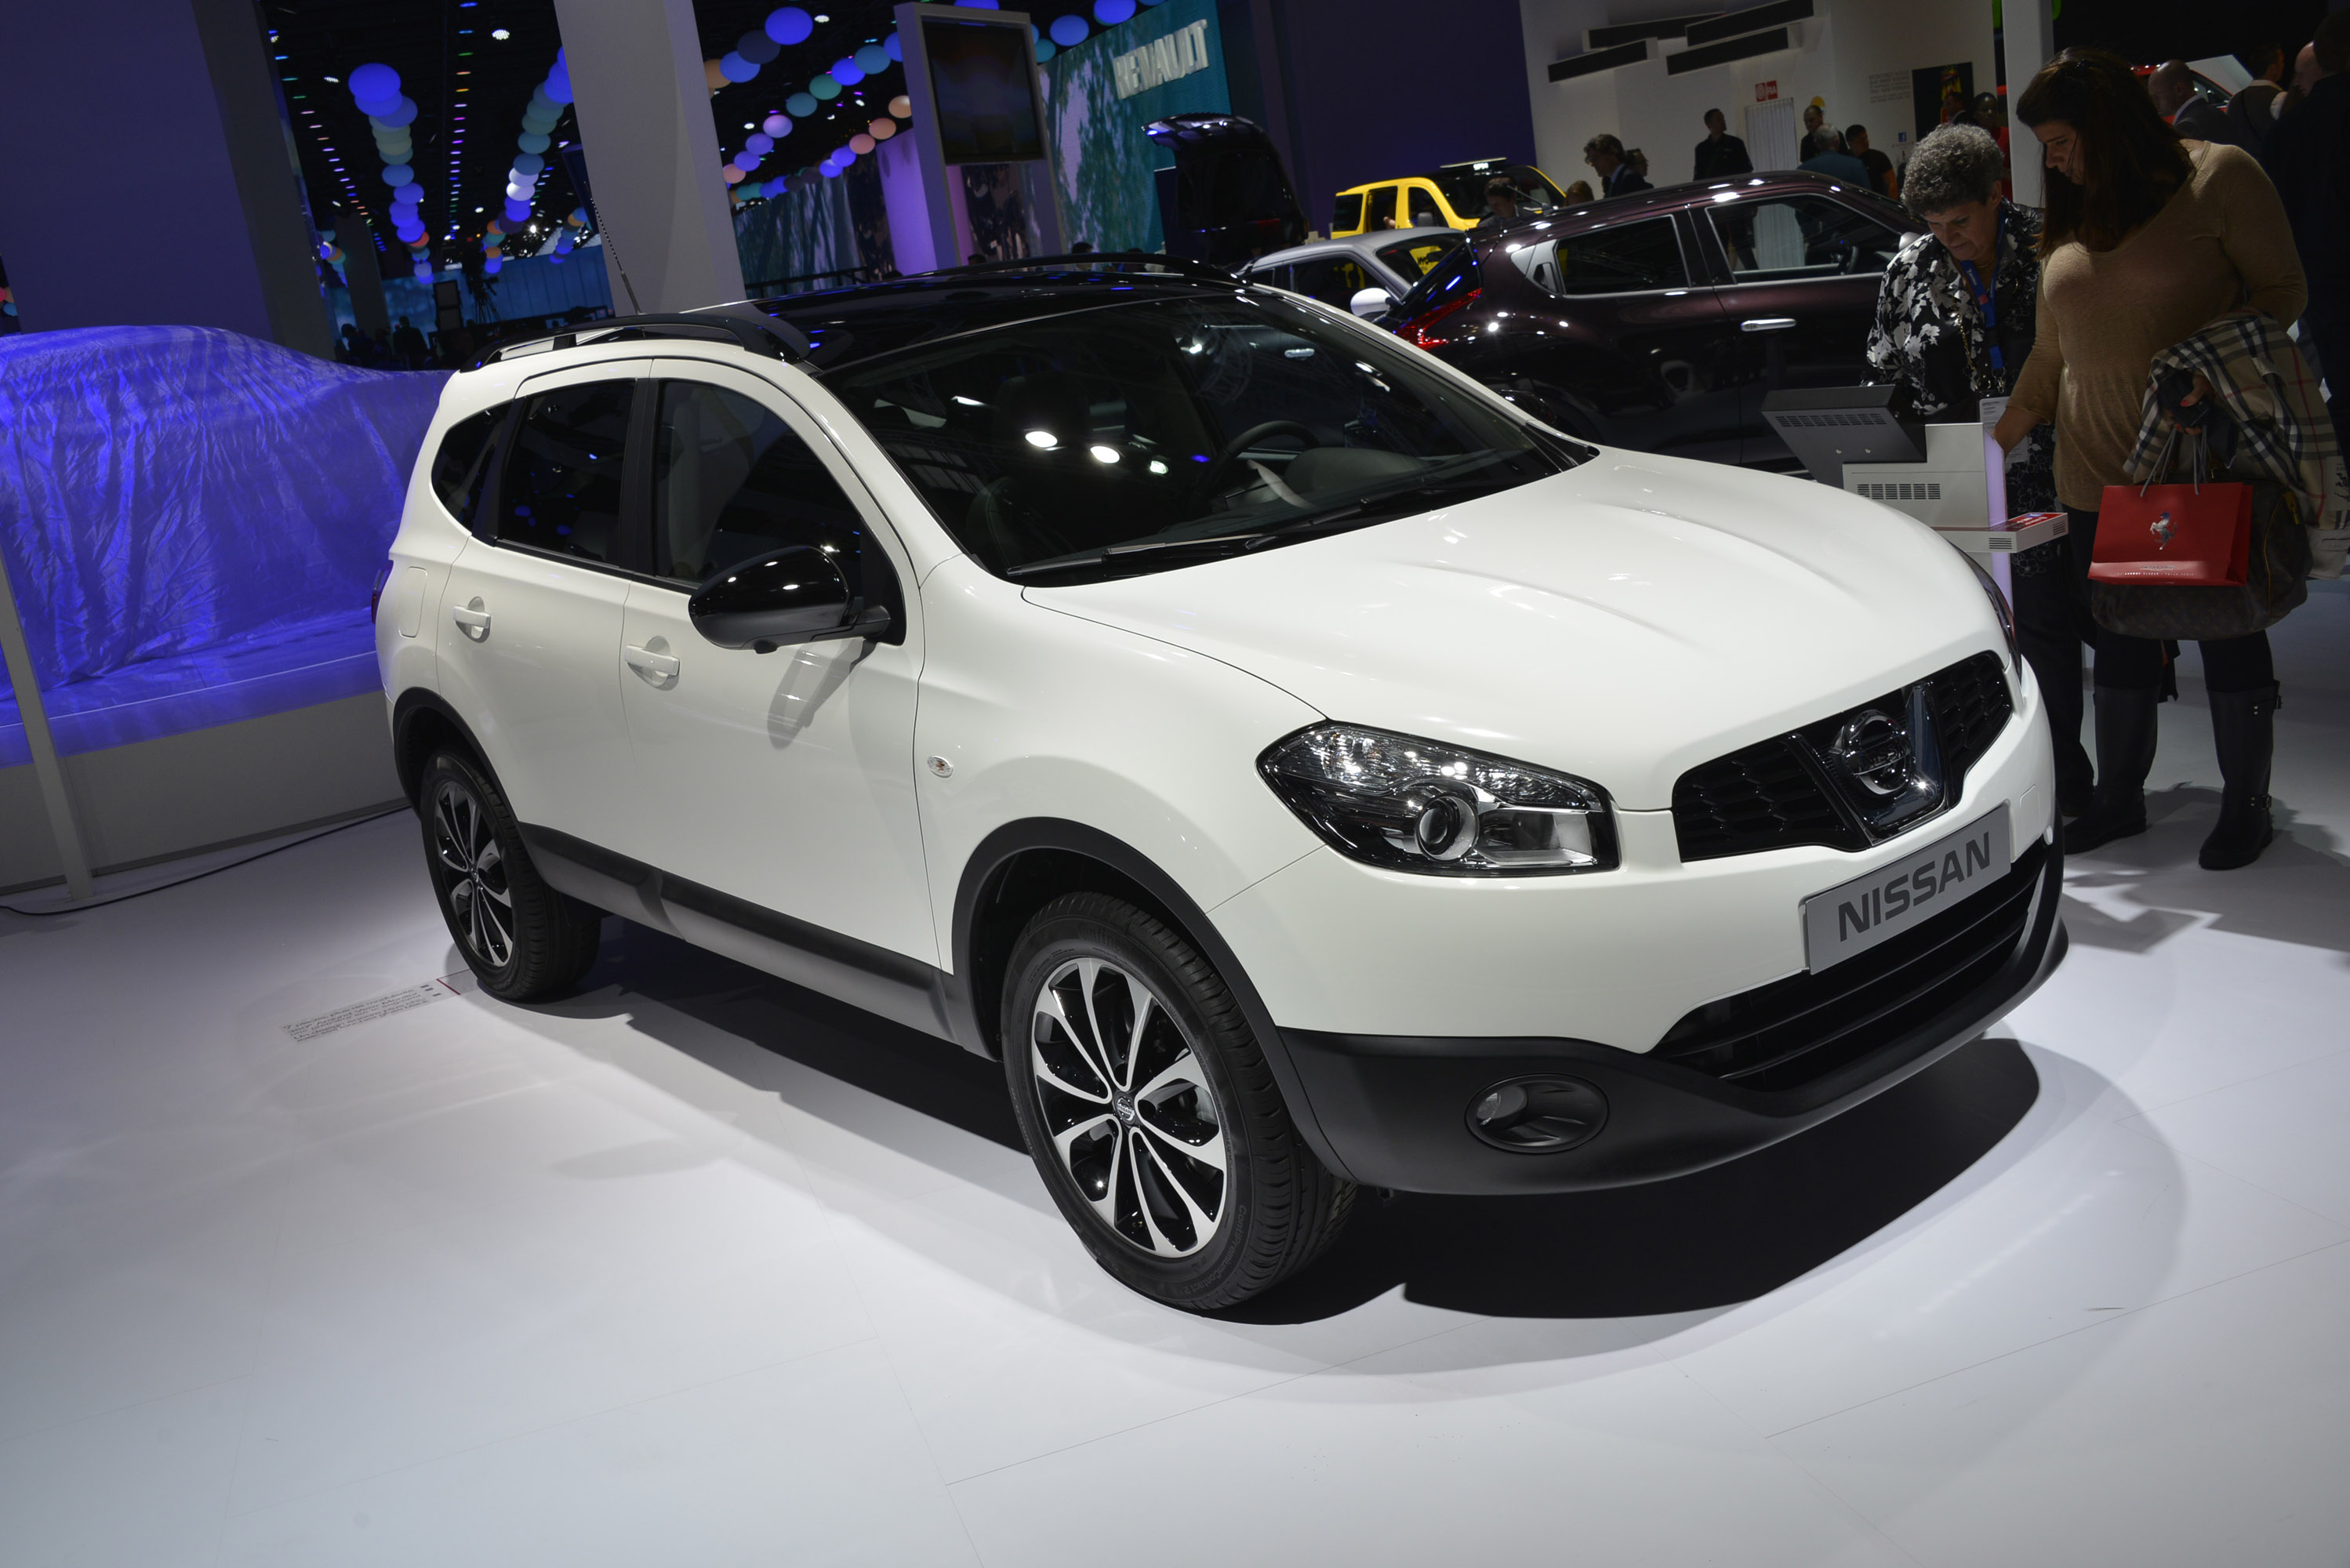 nissan qashqai 2012 review amazing pictures and images look at the car. Black Bedroom Furniture Sets. Home Design Ideas